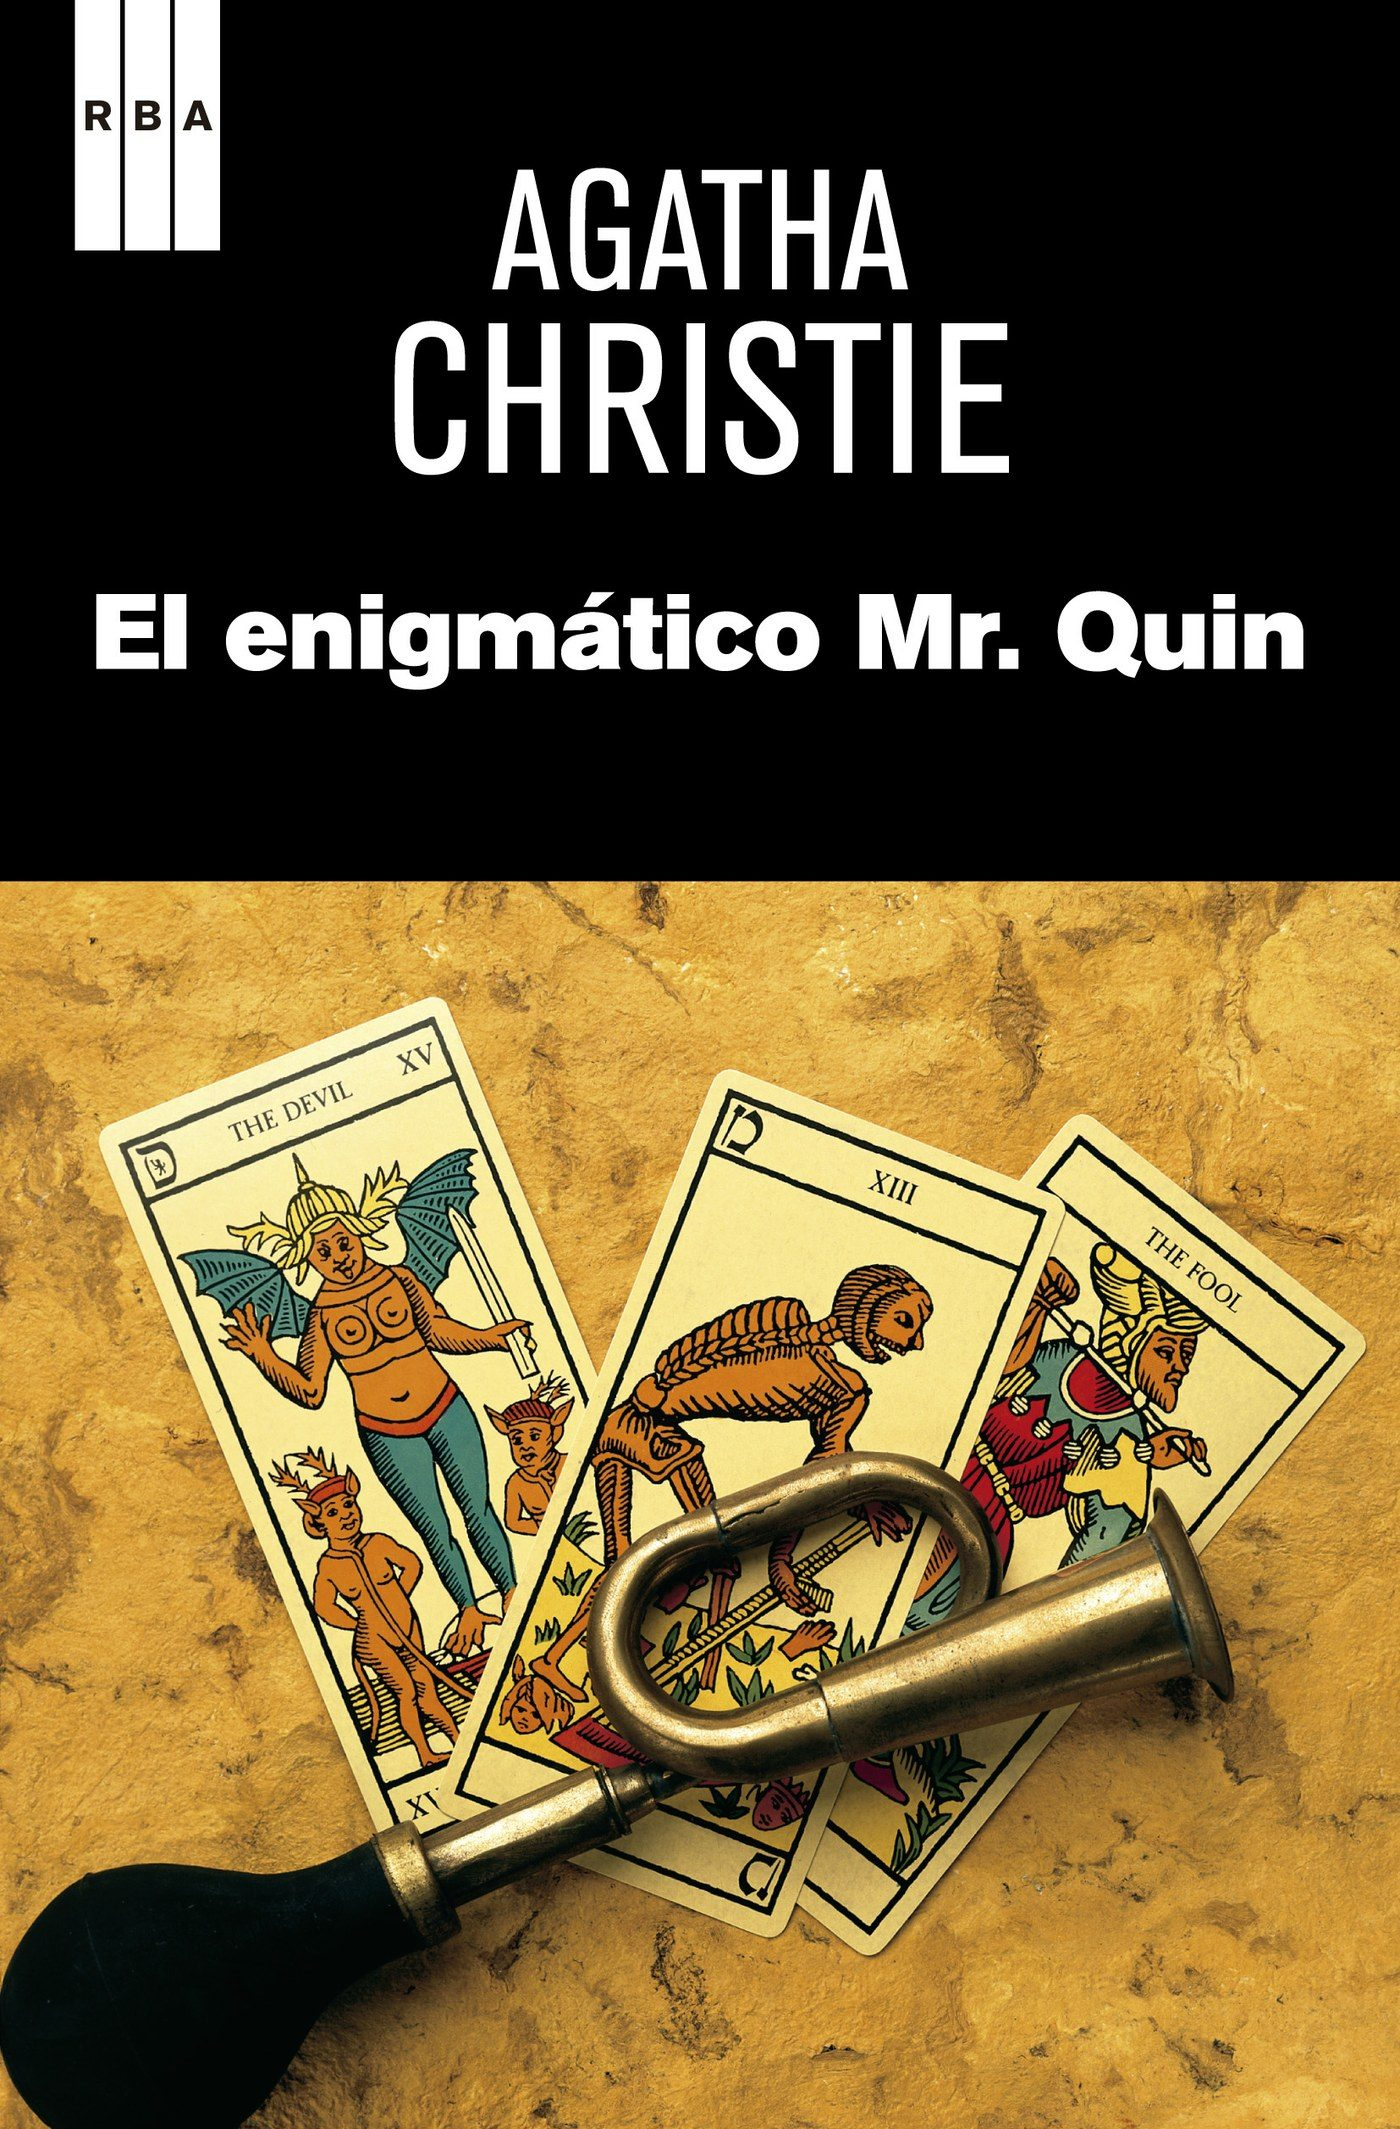 Agatha Christie Libros Pdf El Enigmatico Mr Quin Ebook Agatha Christie Descargar